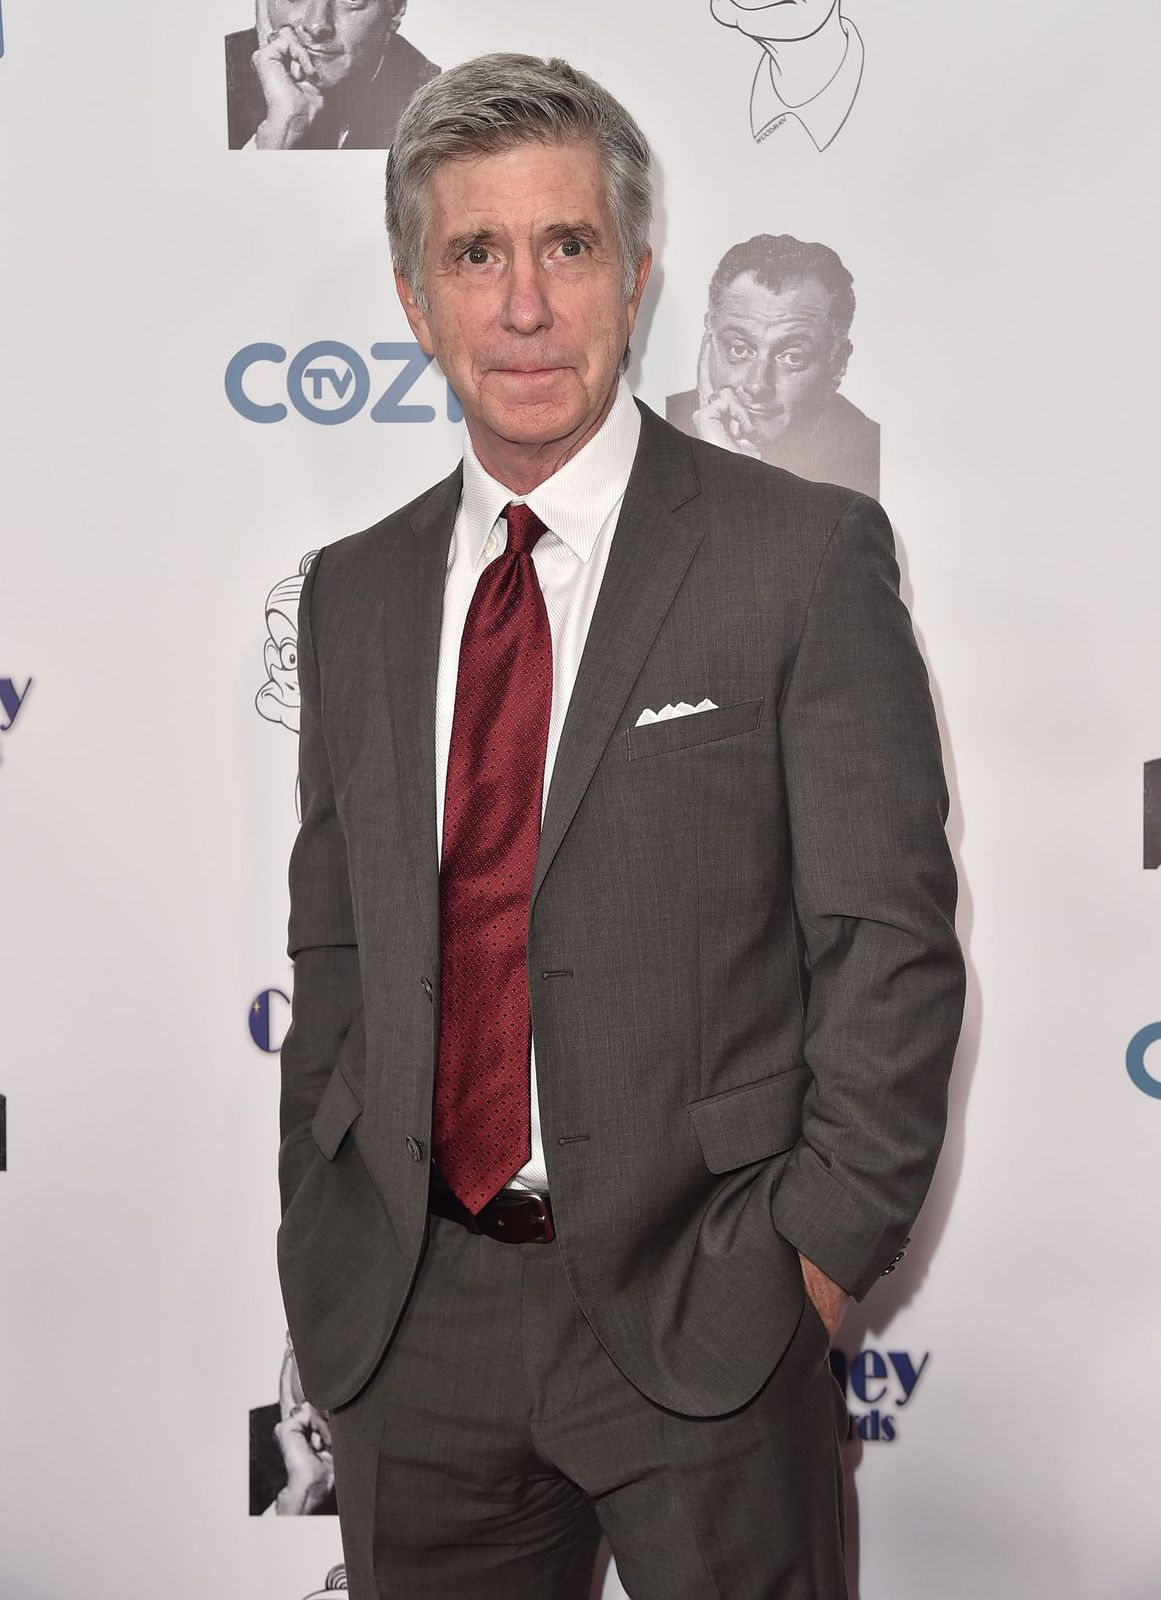 Tom Bergeron at the 3rd Annual Carney Awards at The Broad Stage on October 29, 2017, in Santa Monica, California | Photo: Getty Images